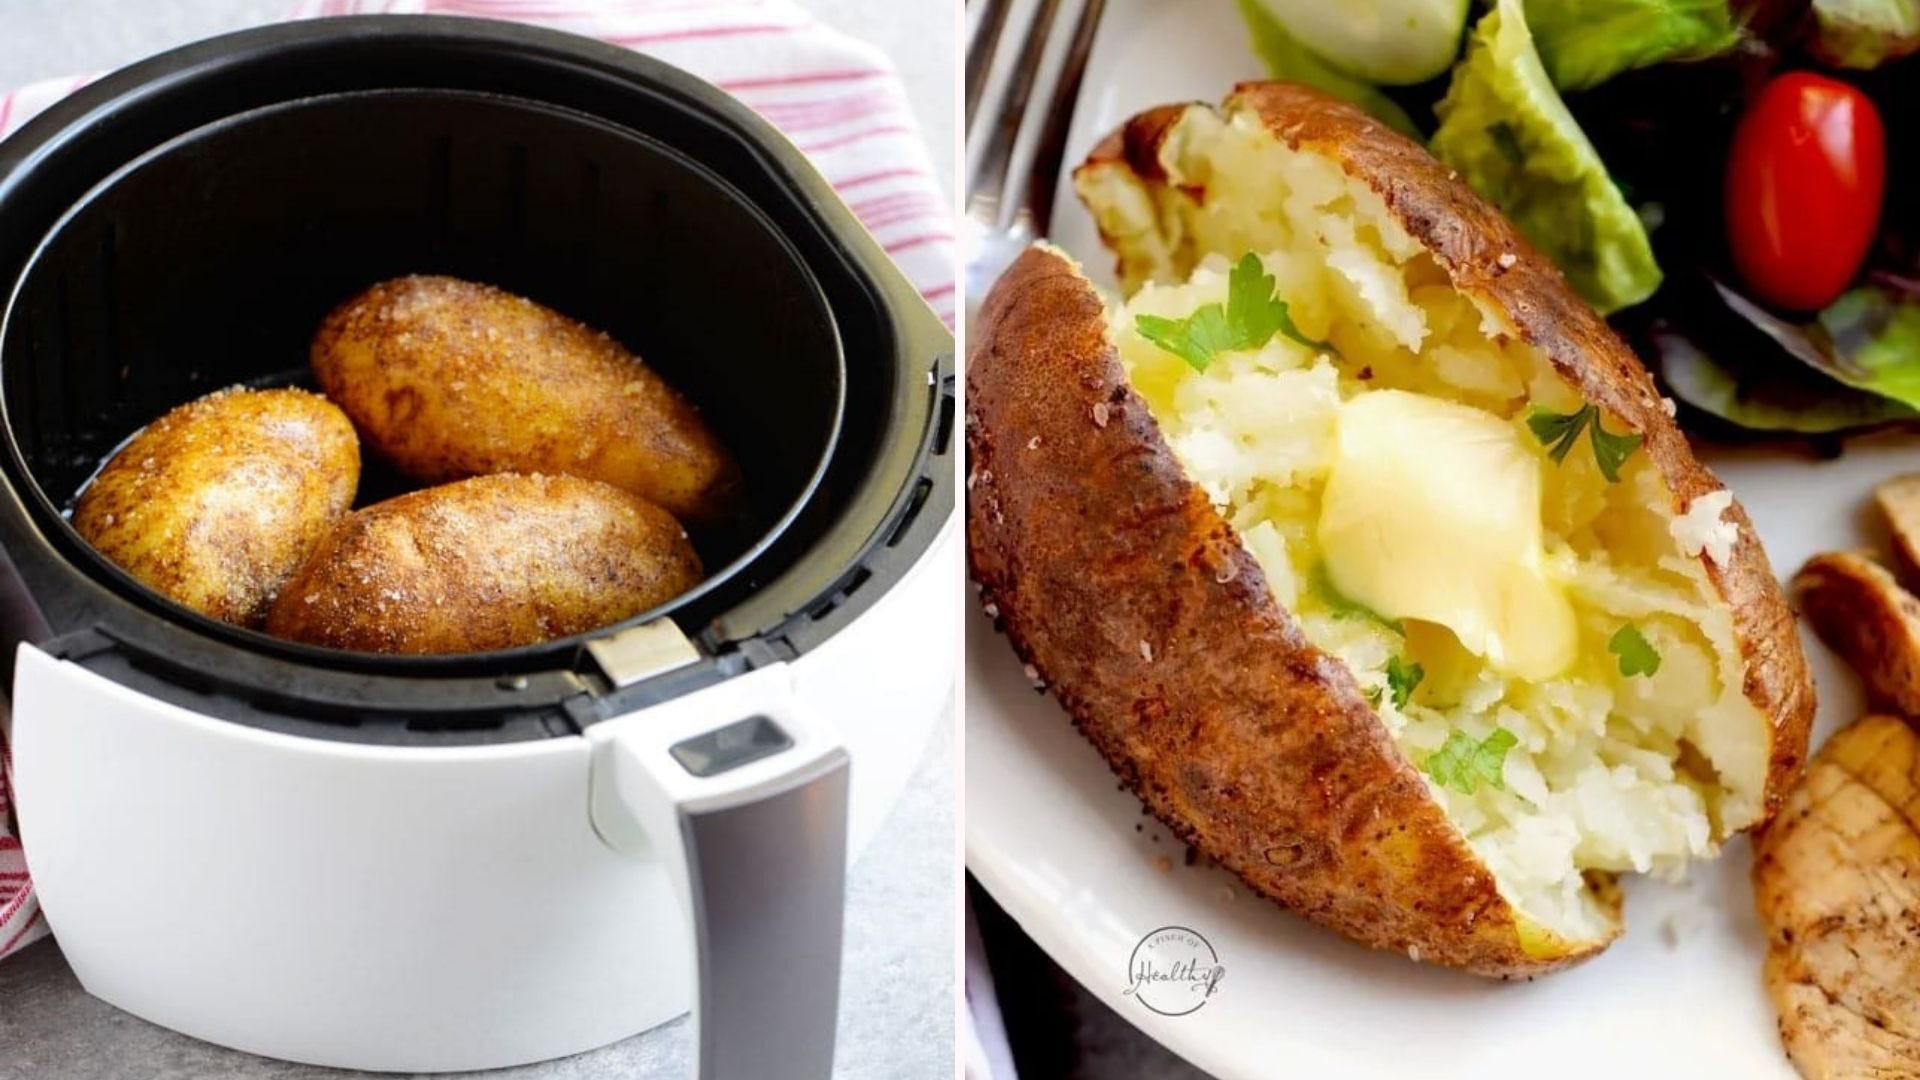 Two images: The left image is of three Russet potatoes placed inside the compartment of an air fryer, and the right image is of the perfectly tender and fluffy baked potato topped with butter and fresh parsley.